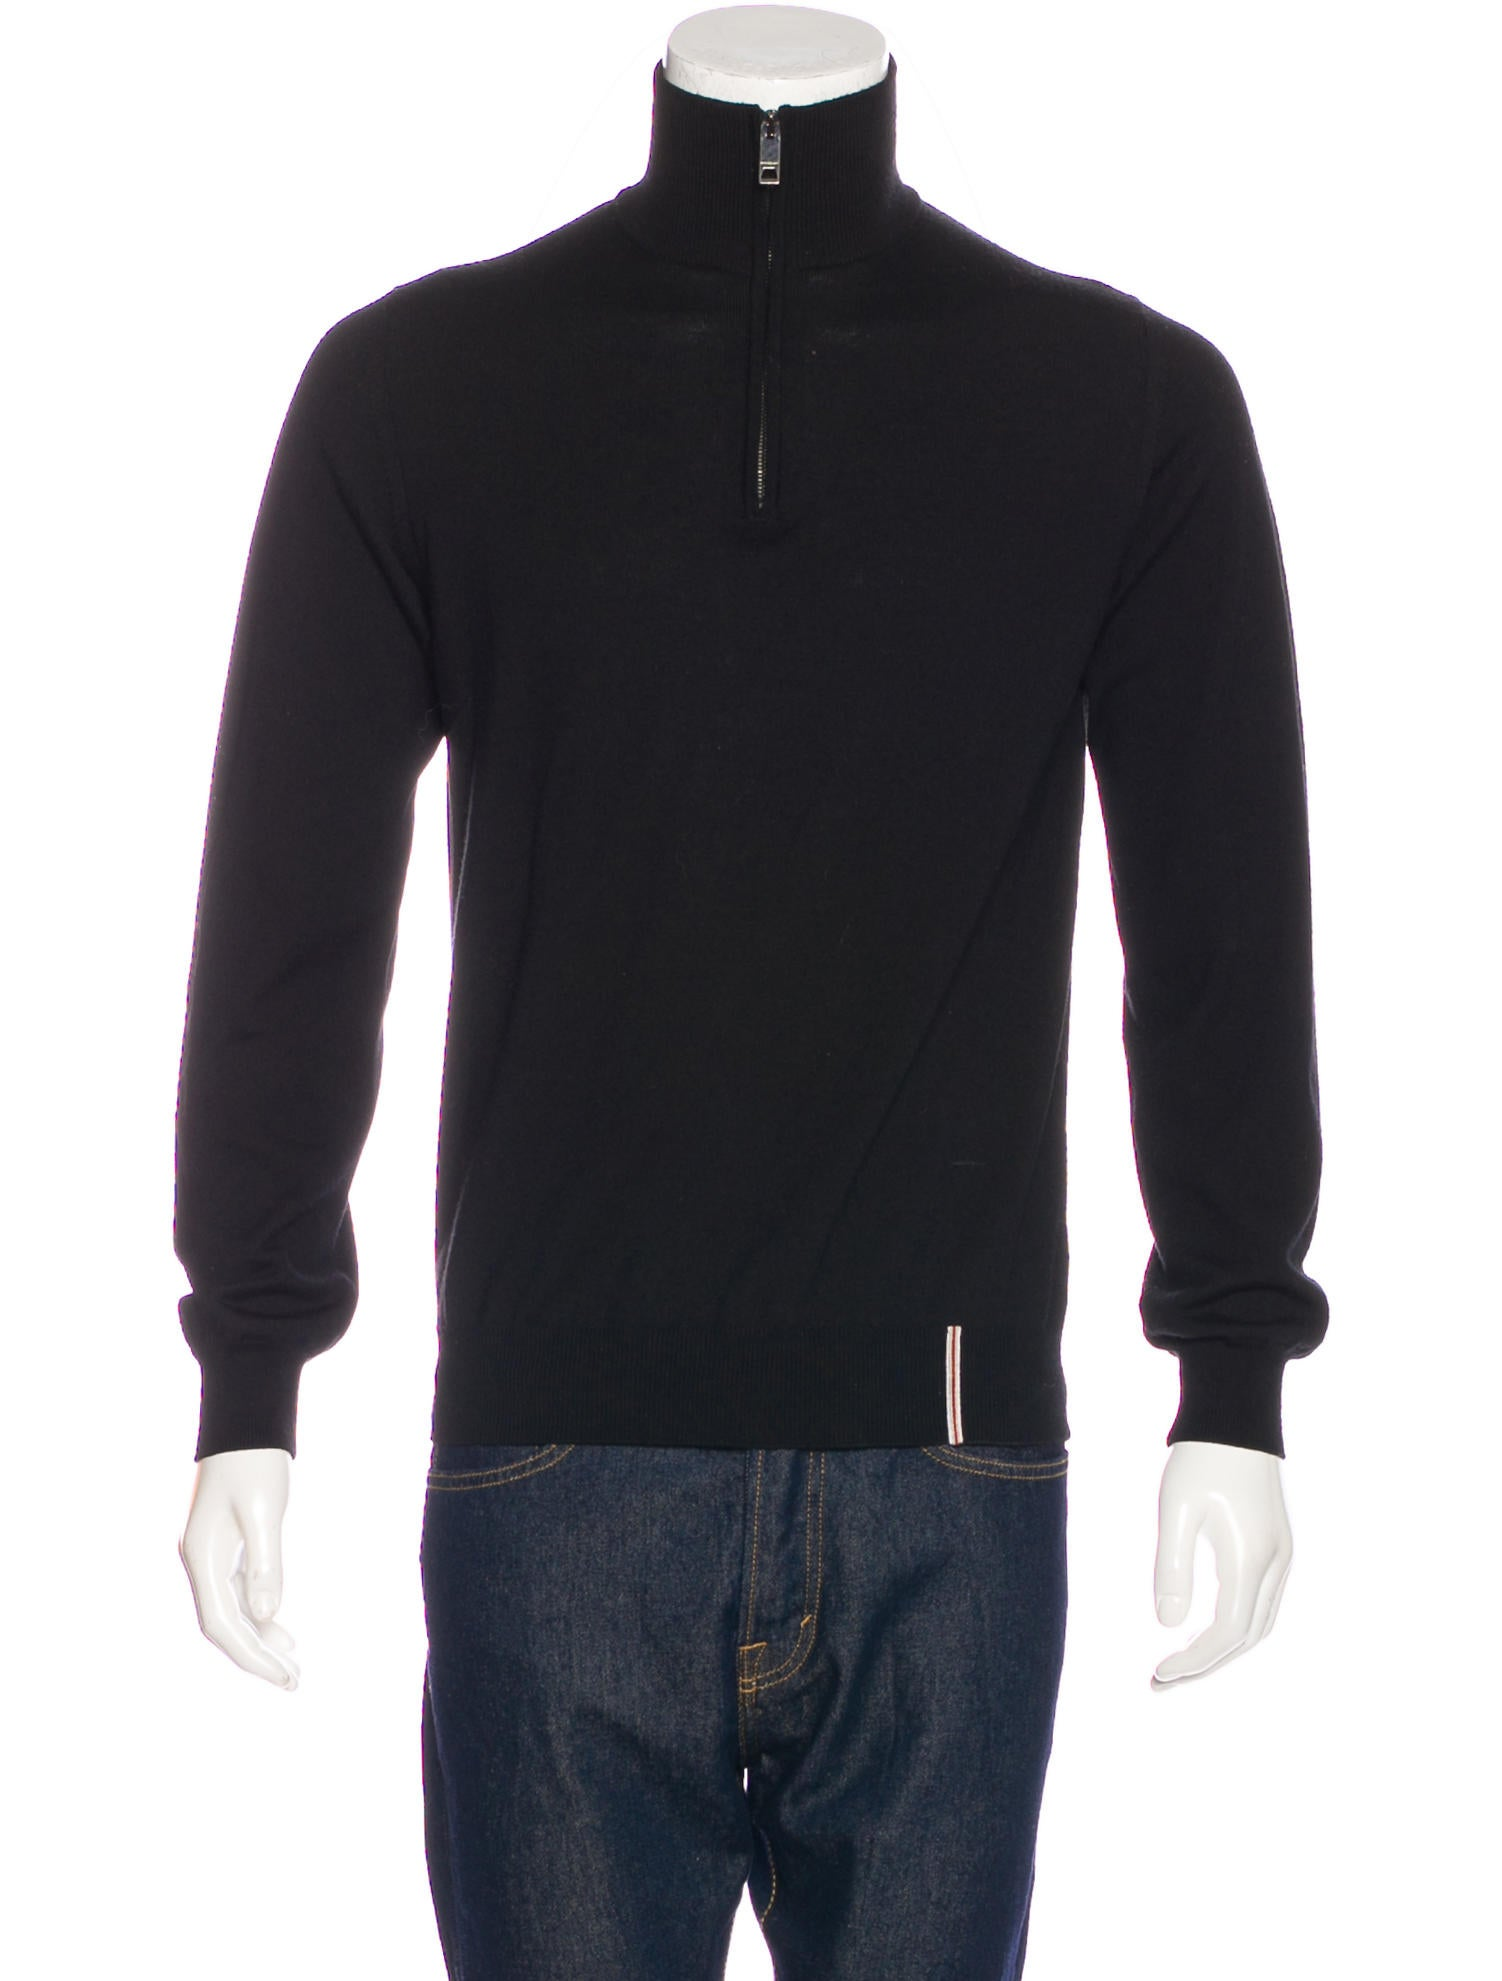 Burberry London Wool Half-Zip Sweater - Clothing - WBURL26960 | The RealReal